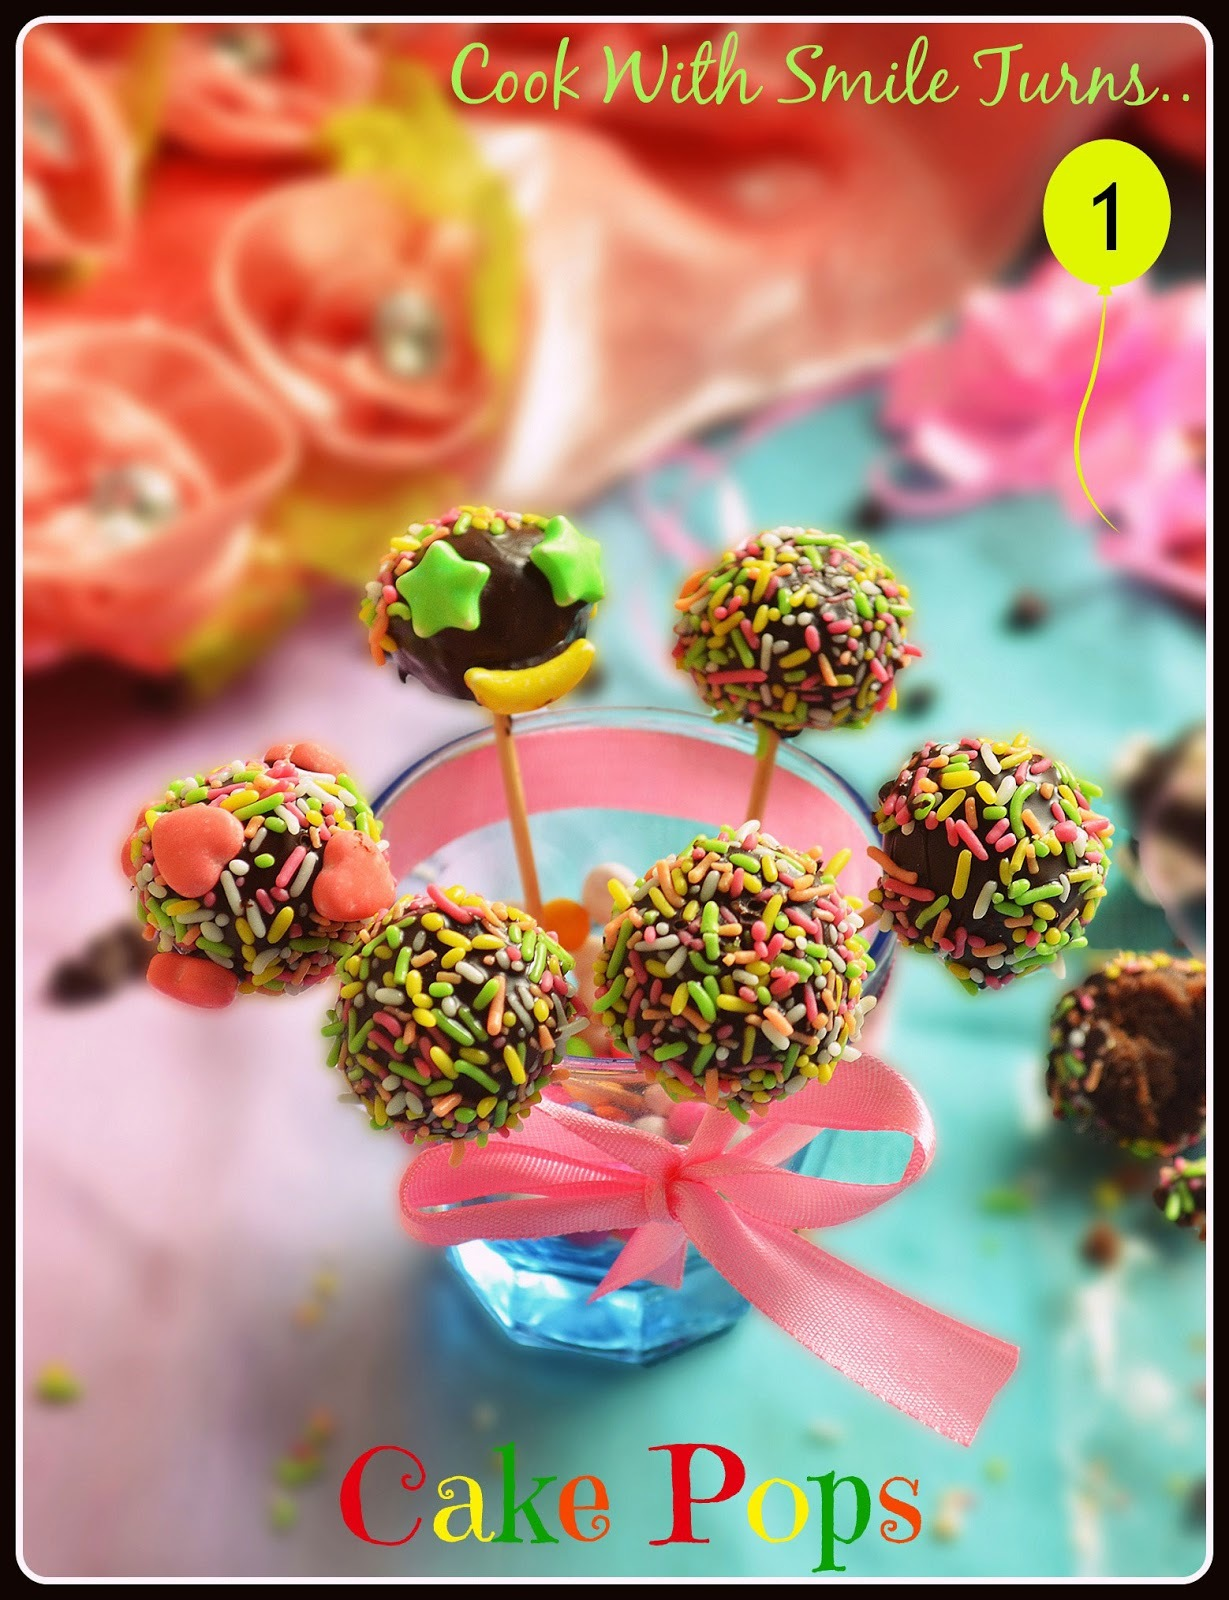 CAKE POPS / EASY CAKE POPS RECIPE - EASY KIDS PARTY FOOD